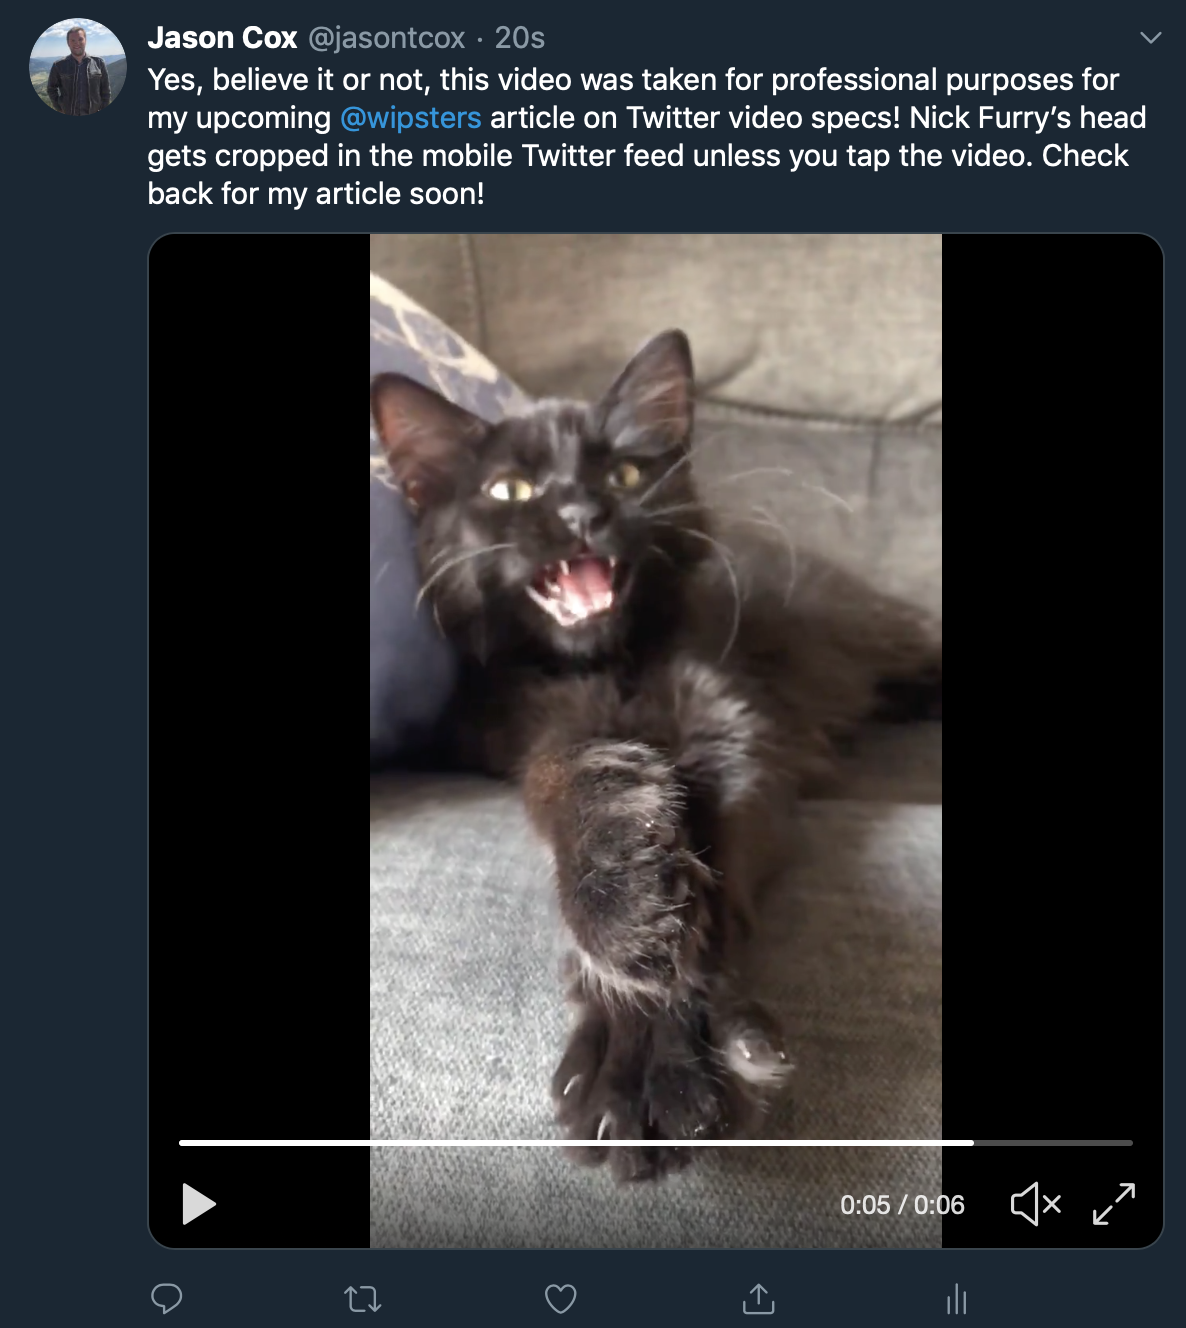 Vertical video is not cropped in a desktop browser Twitter feed.